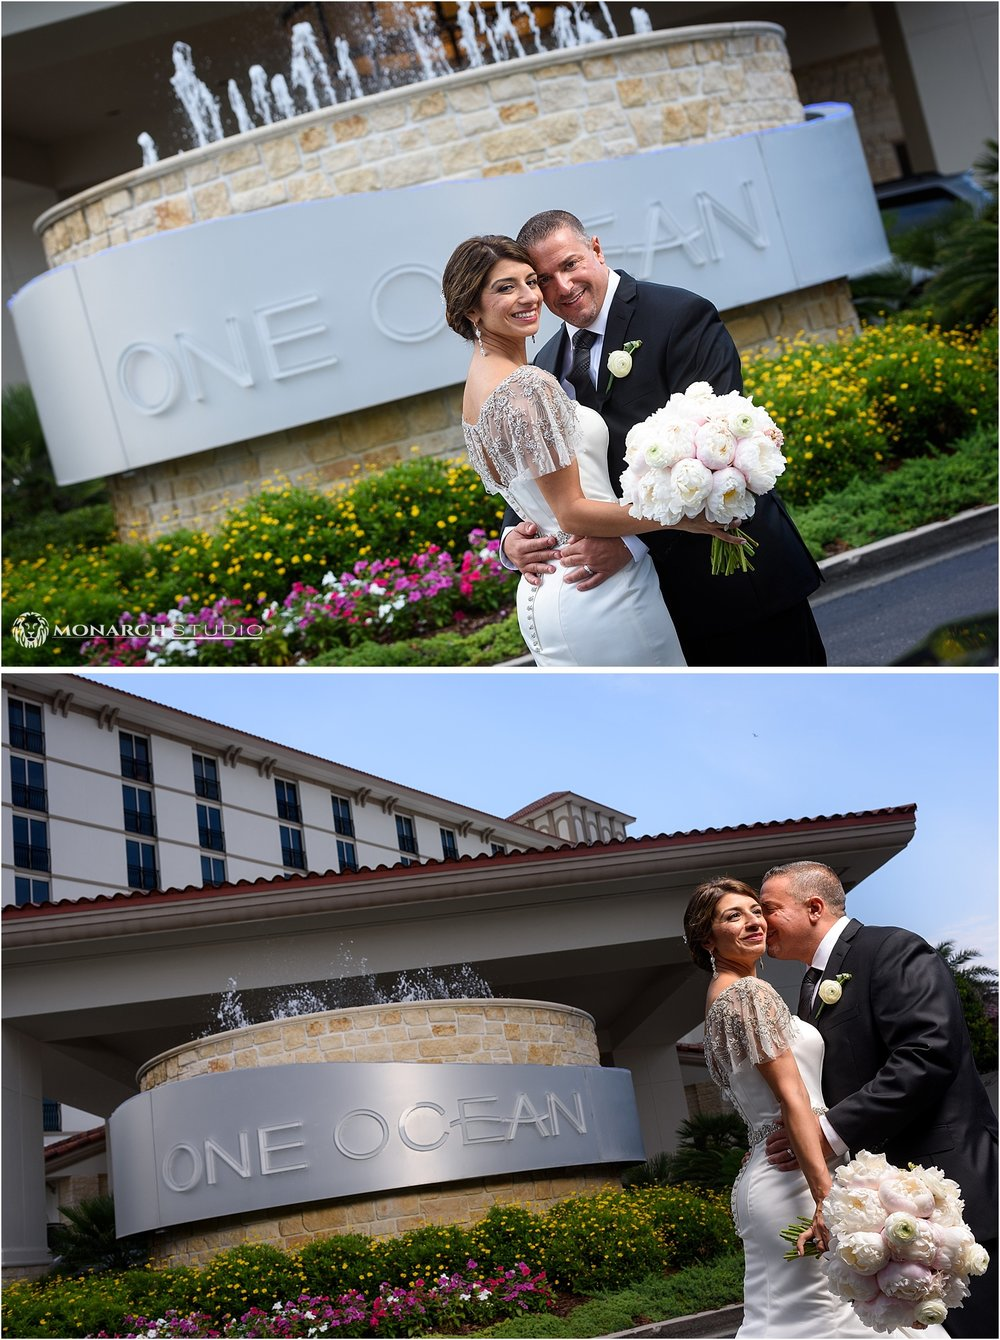 Jacksonville-Wedding-Photographer-One-Ocean-052.jpg